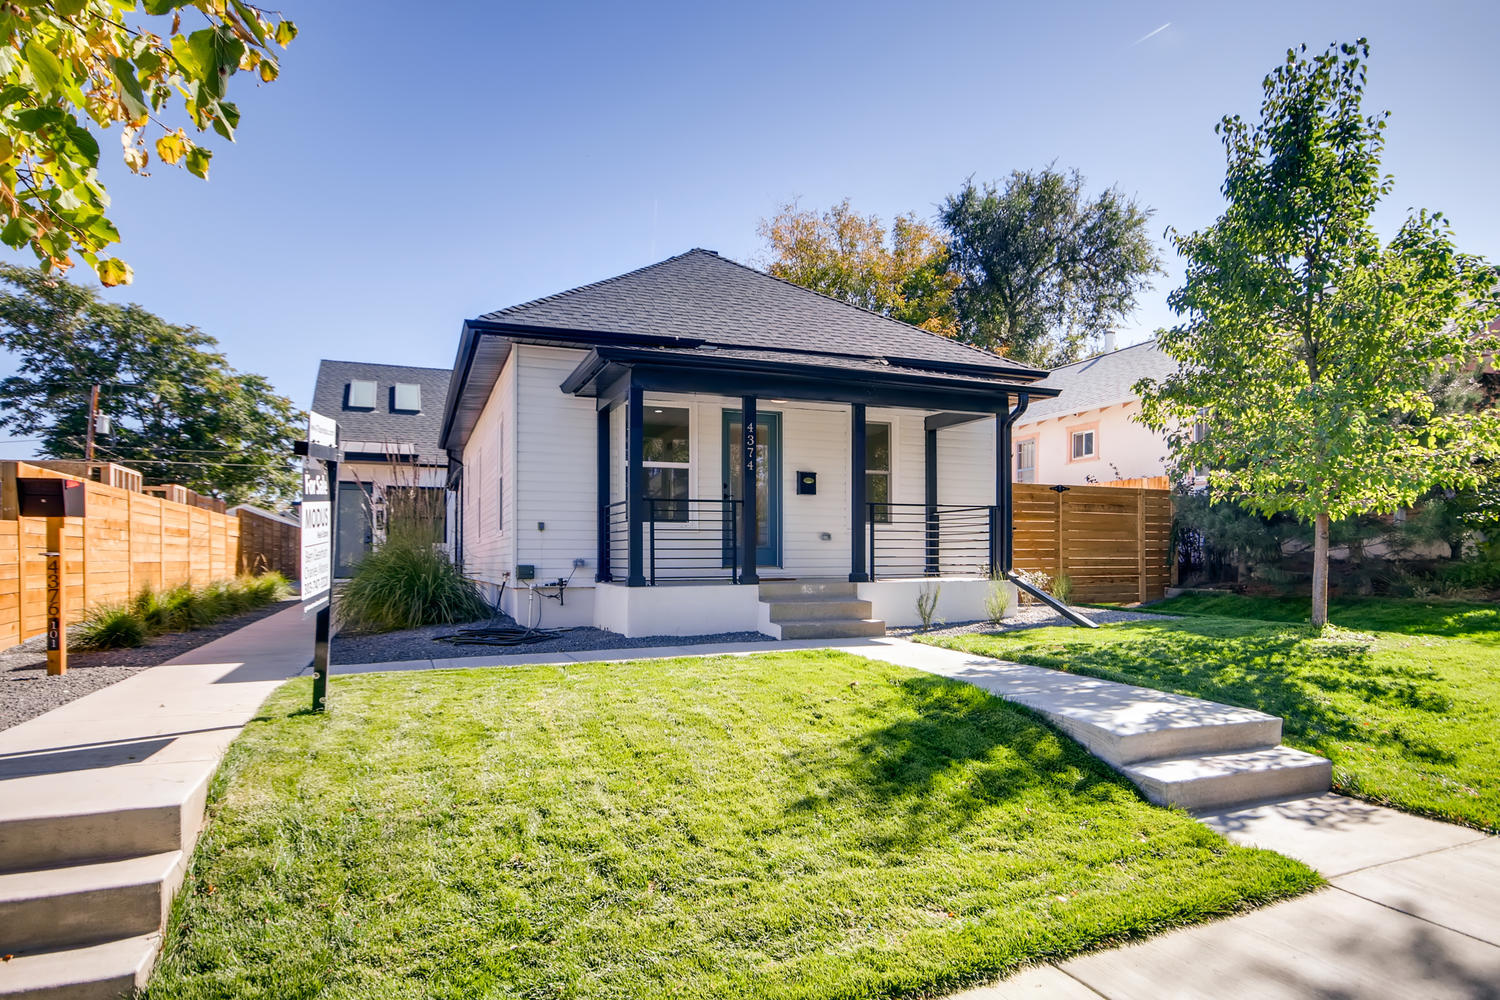 653_444_property_4374-zenobia-denver-co-80212-large-001-004-exterior-front-1500x1000-72dpi-20191008104928.jpg